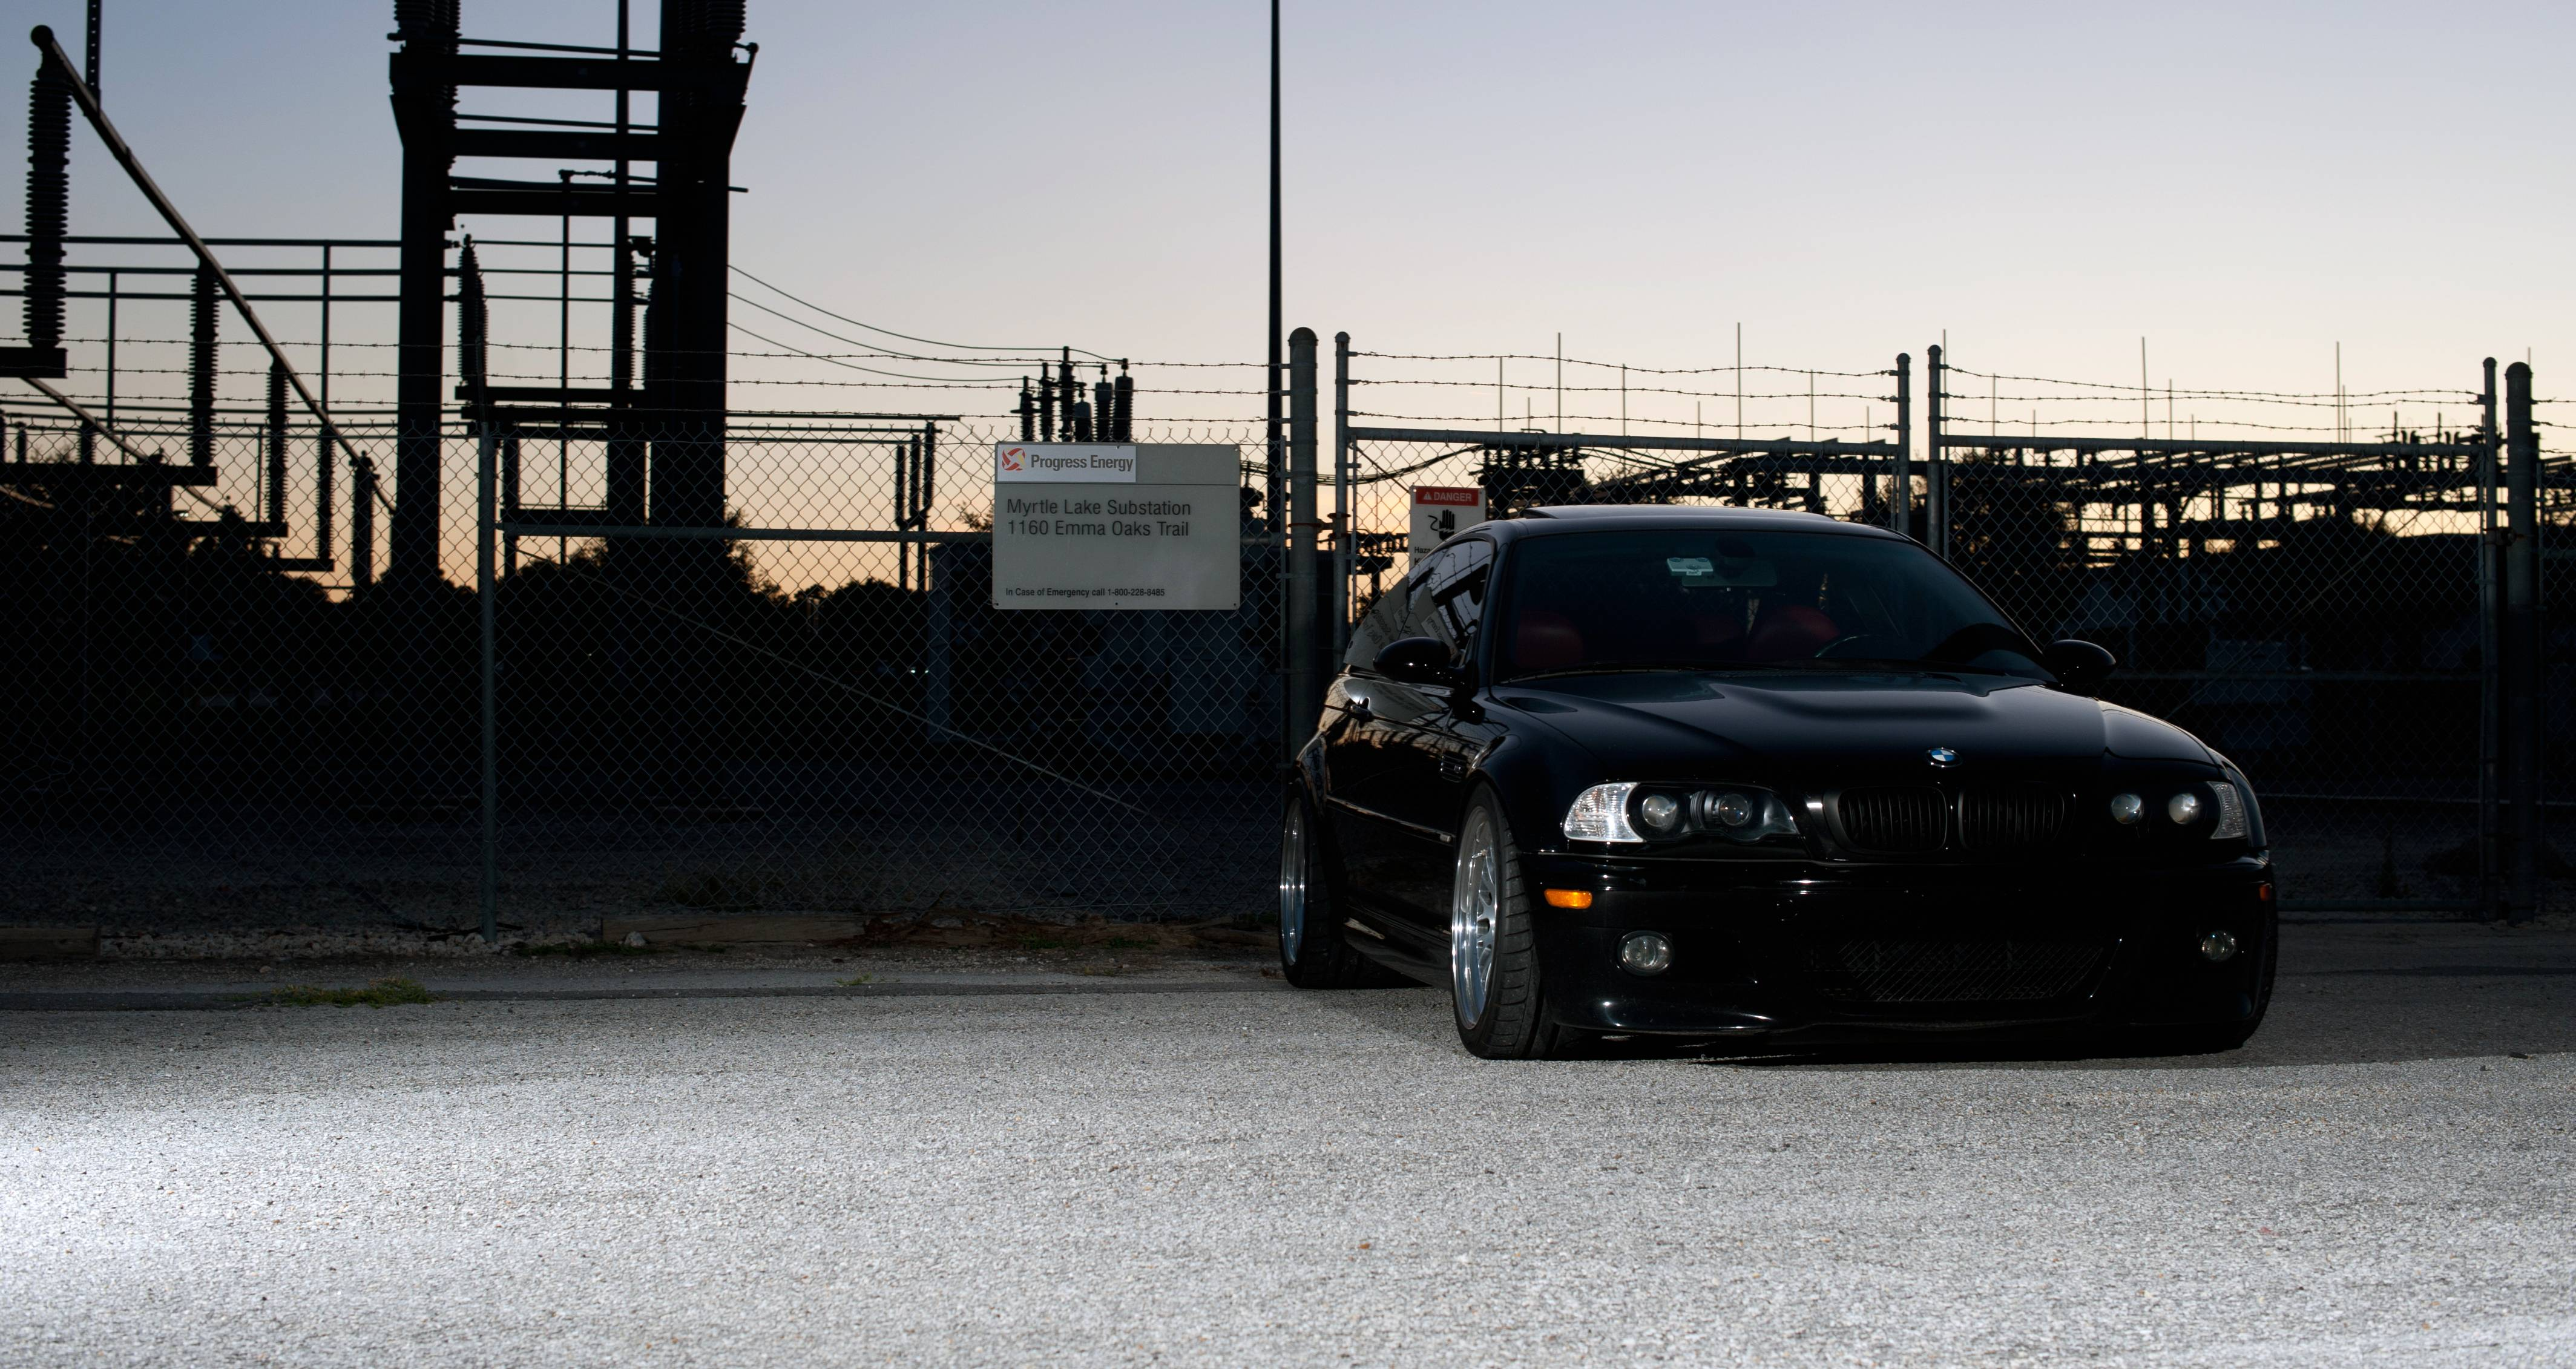 Bmw e46 wallpapers wallpaper cave wallpapers bmw m3 e46 silver tuning bmw tuning car voltagebd Choice Image